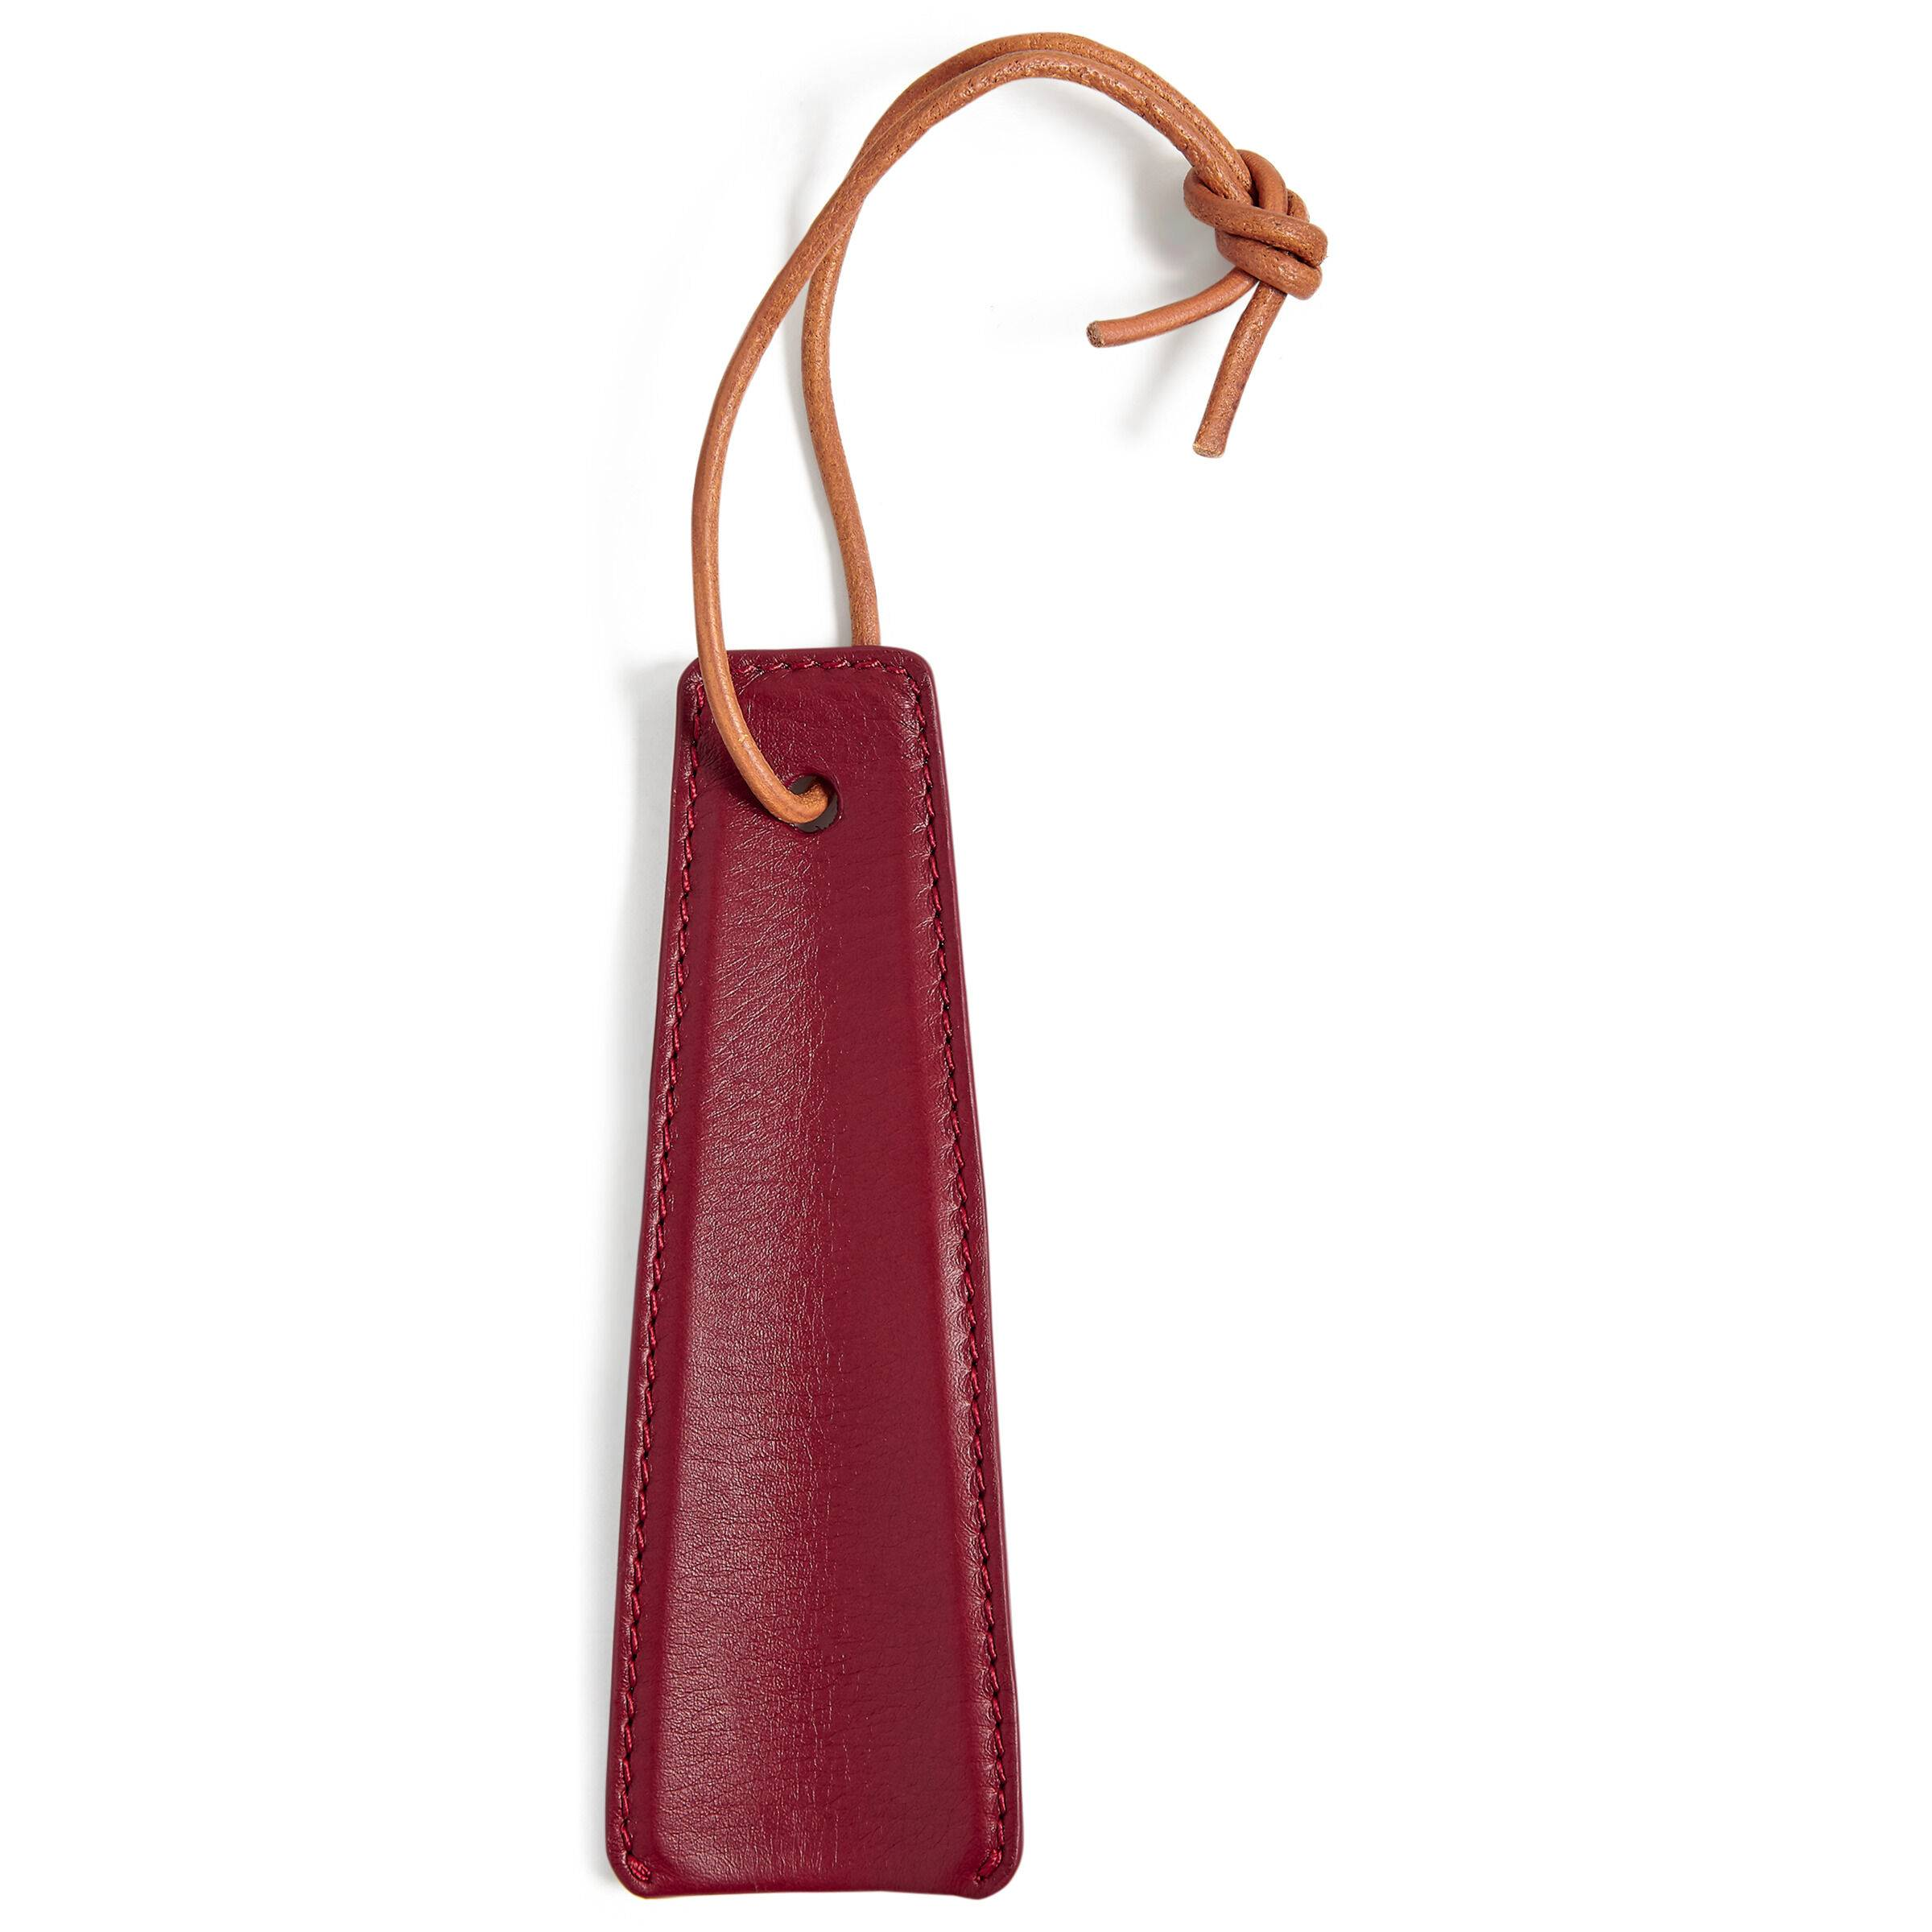 ECCO Leather Shoe Horn: One Size - Syrah